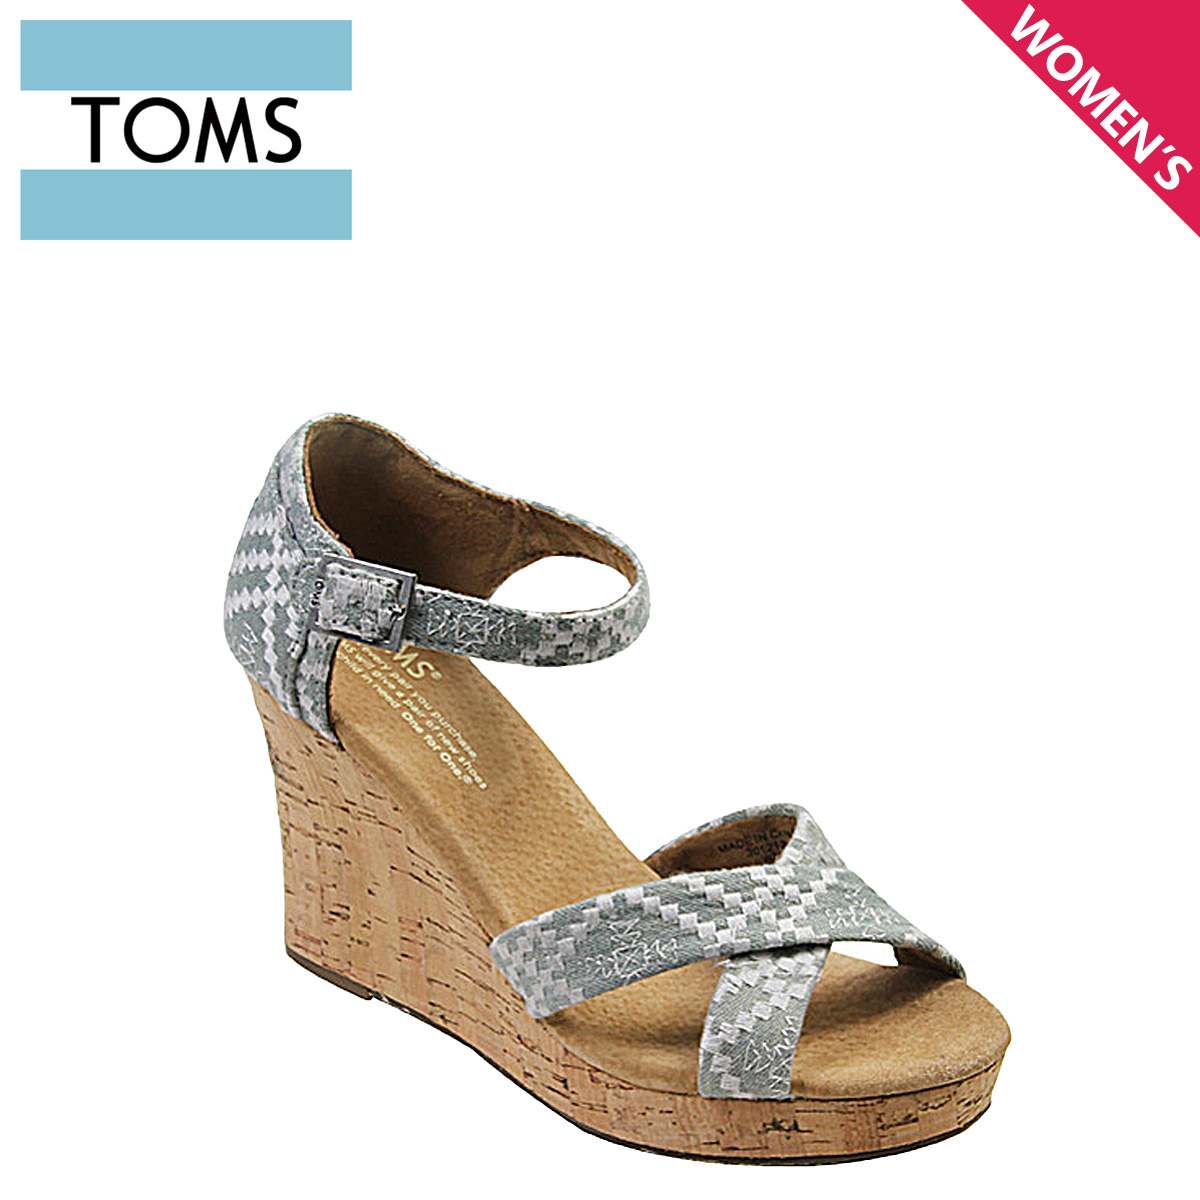 5029438d340 Thoms shoes TOMS SHOES Lady s sandals EMBROIDERED WOMEN S STRAPPY WEDGES  Tom s Thoms shoes